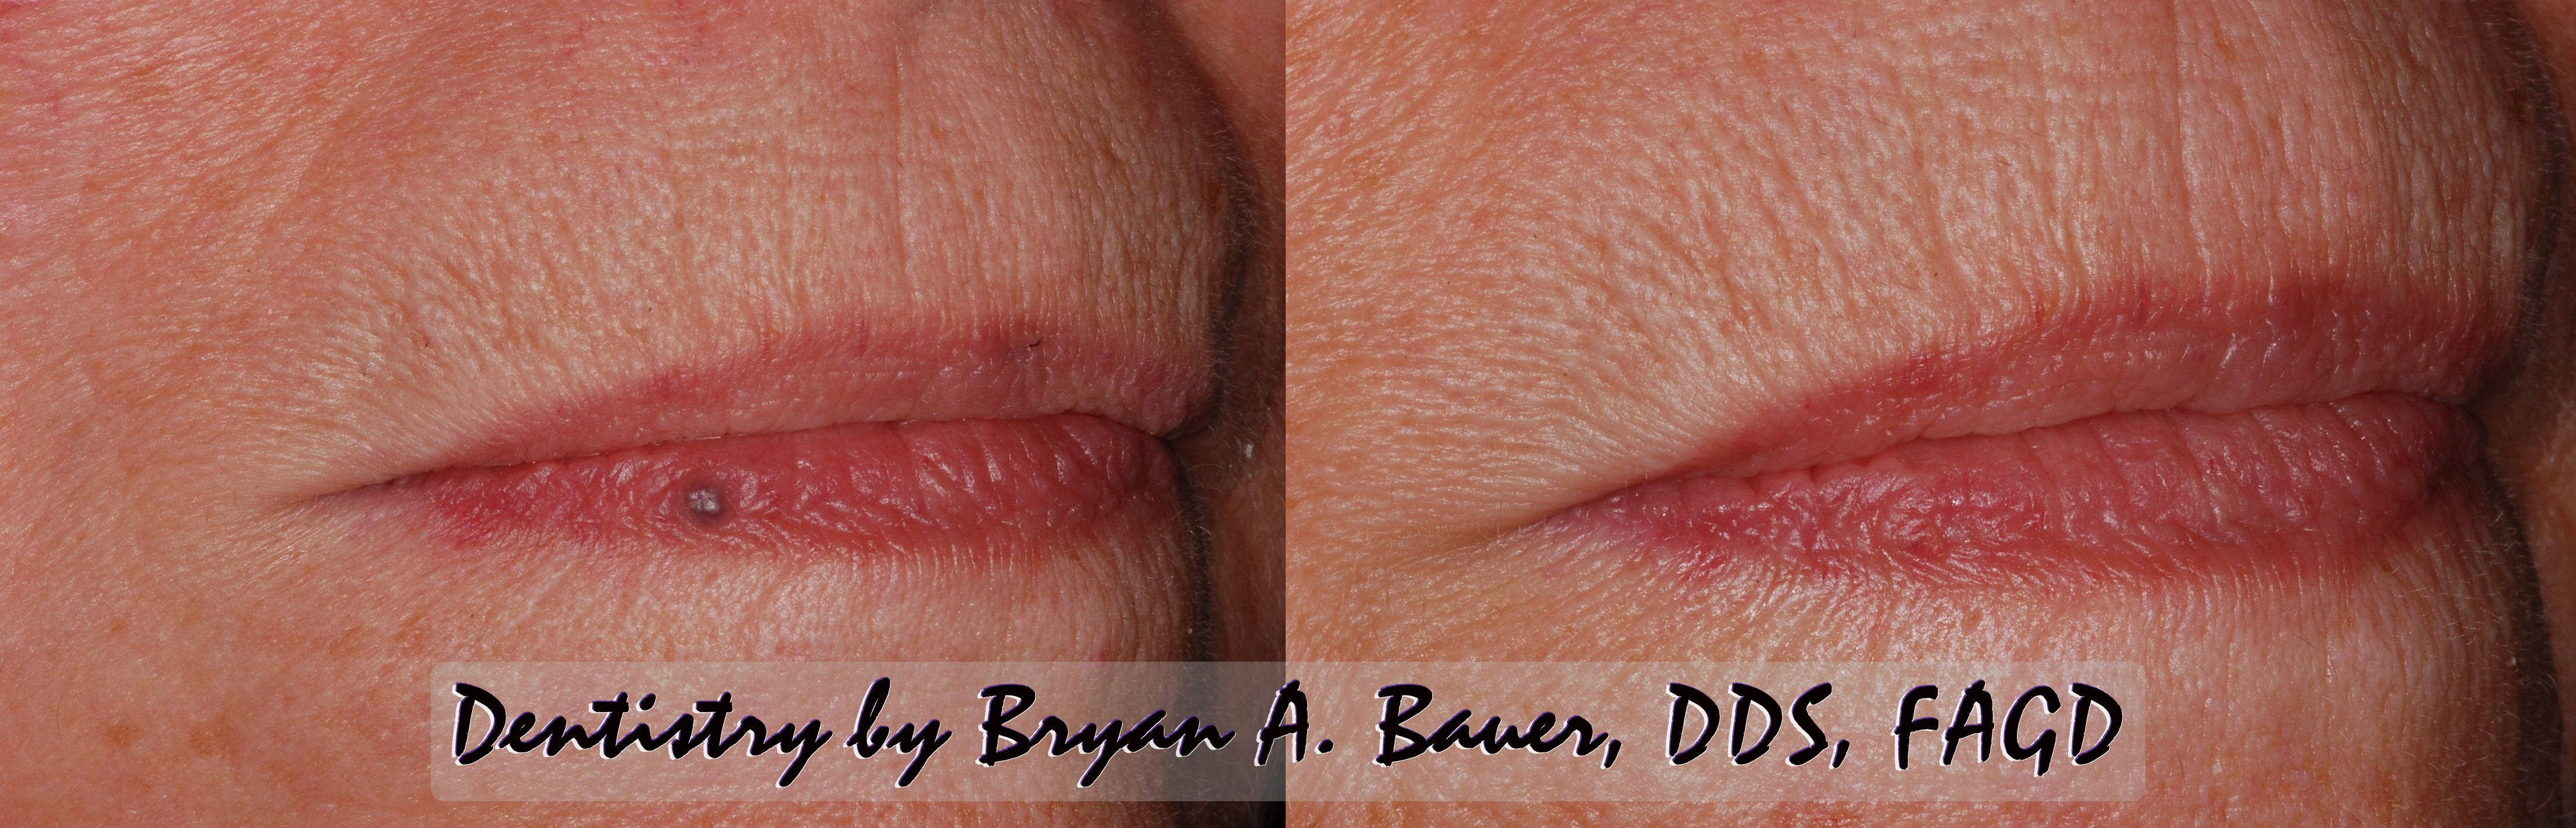 Small blue bump on lip - Bauer Smiles